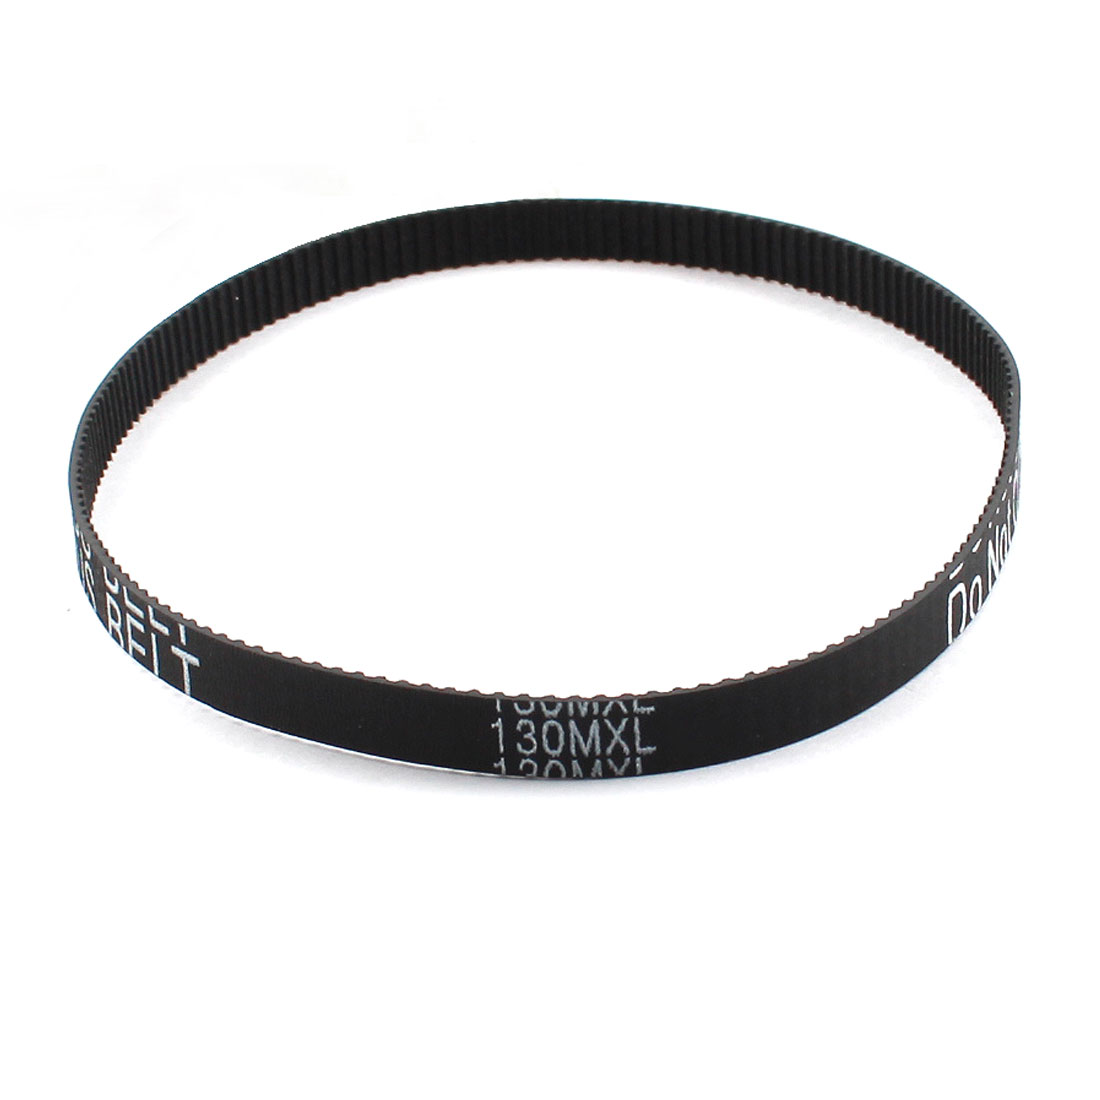 "130MXL025 162-Tooth 2.032mm Pitch 6.4mm Wide Black Industrial Stepper Motor Groove Cogged Synchronous Timing Belt 13"" Girth"